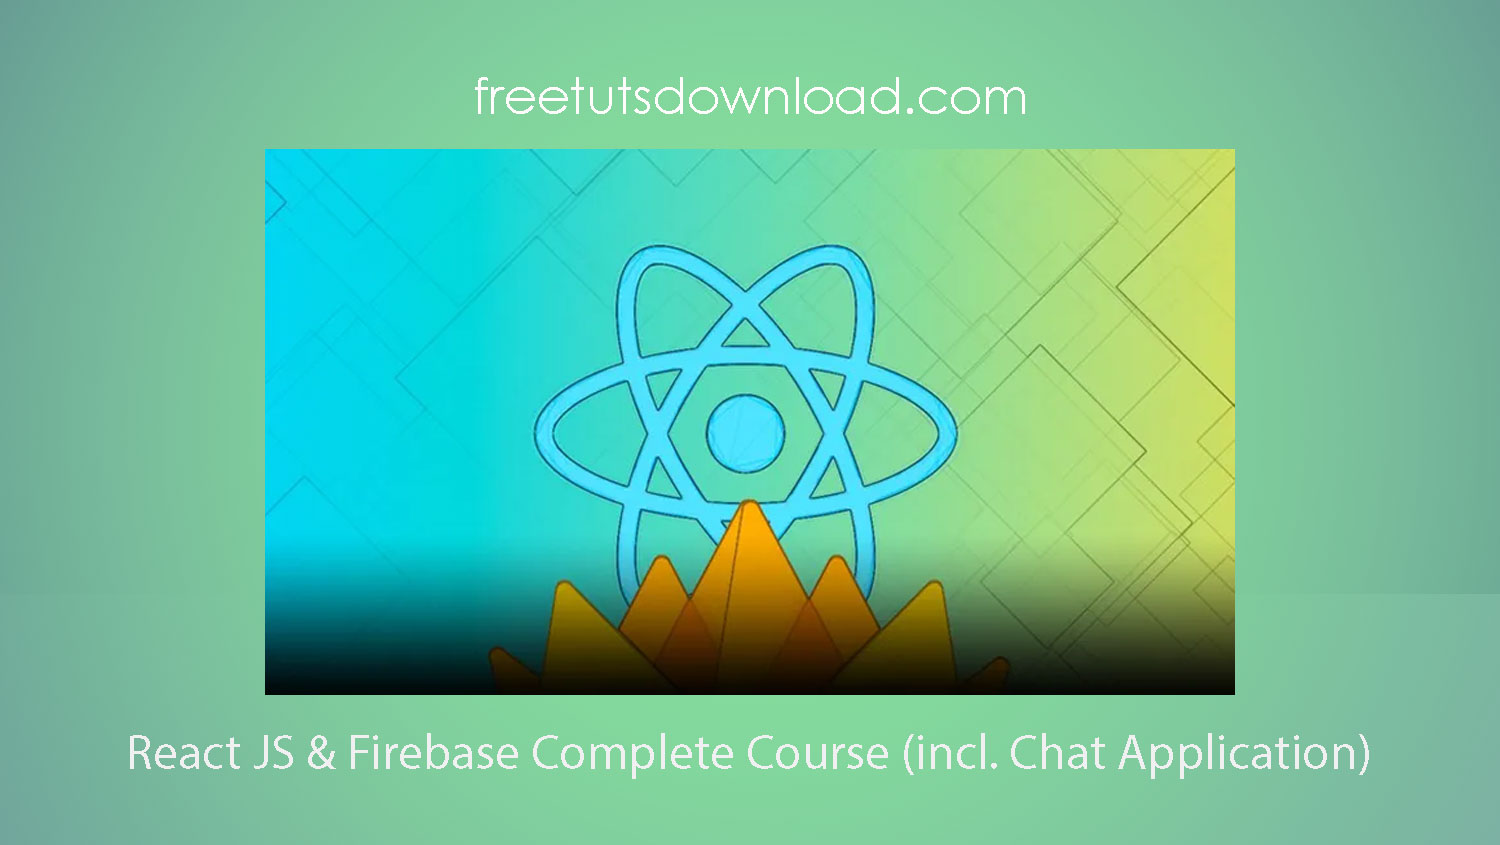 React JS & Firebase Complete Course (incl. Chat Application)